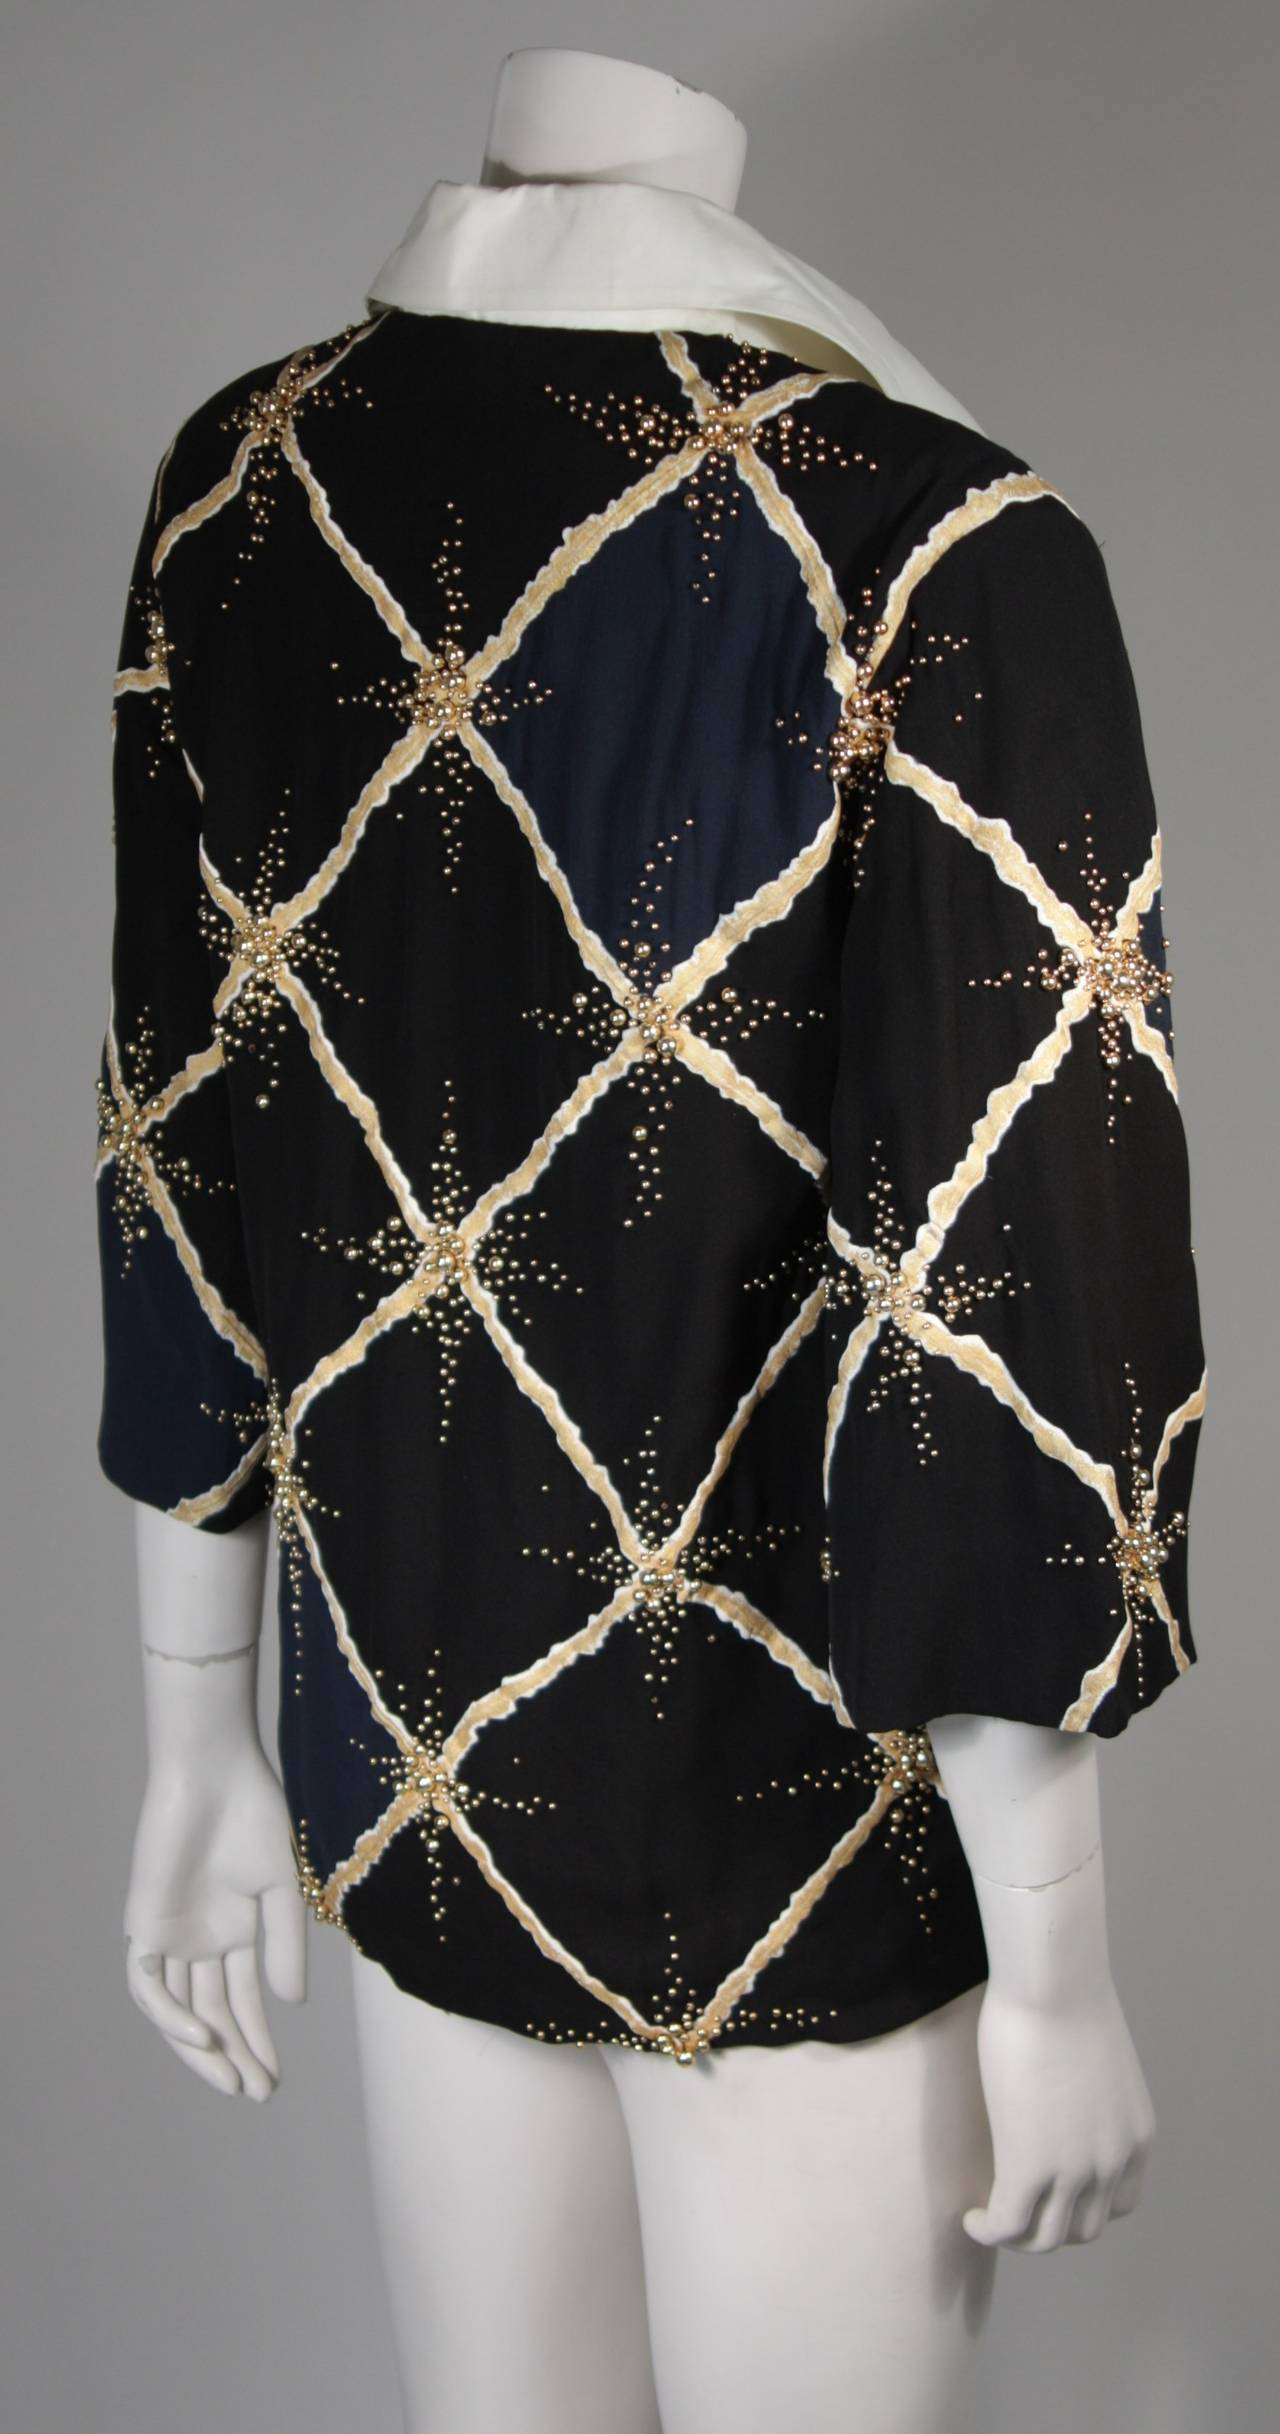 Pierre Balmain Couture Embellished Blouse with Exaggerated Collar  Size Small 7